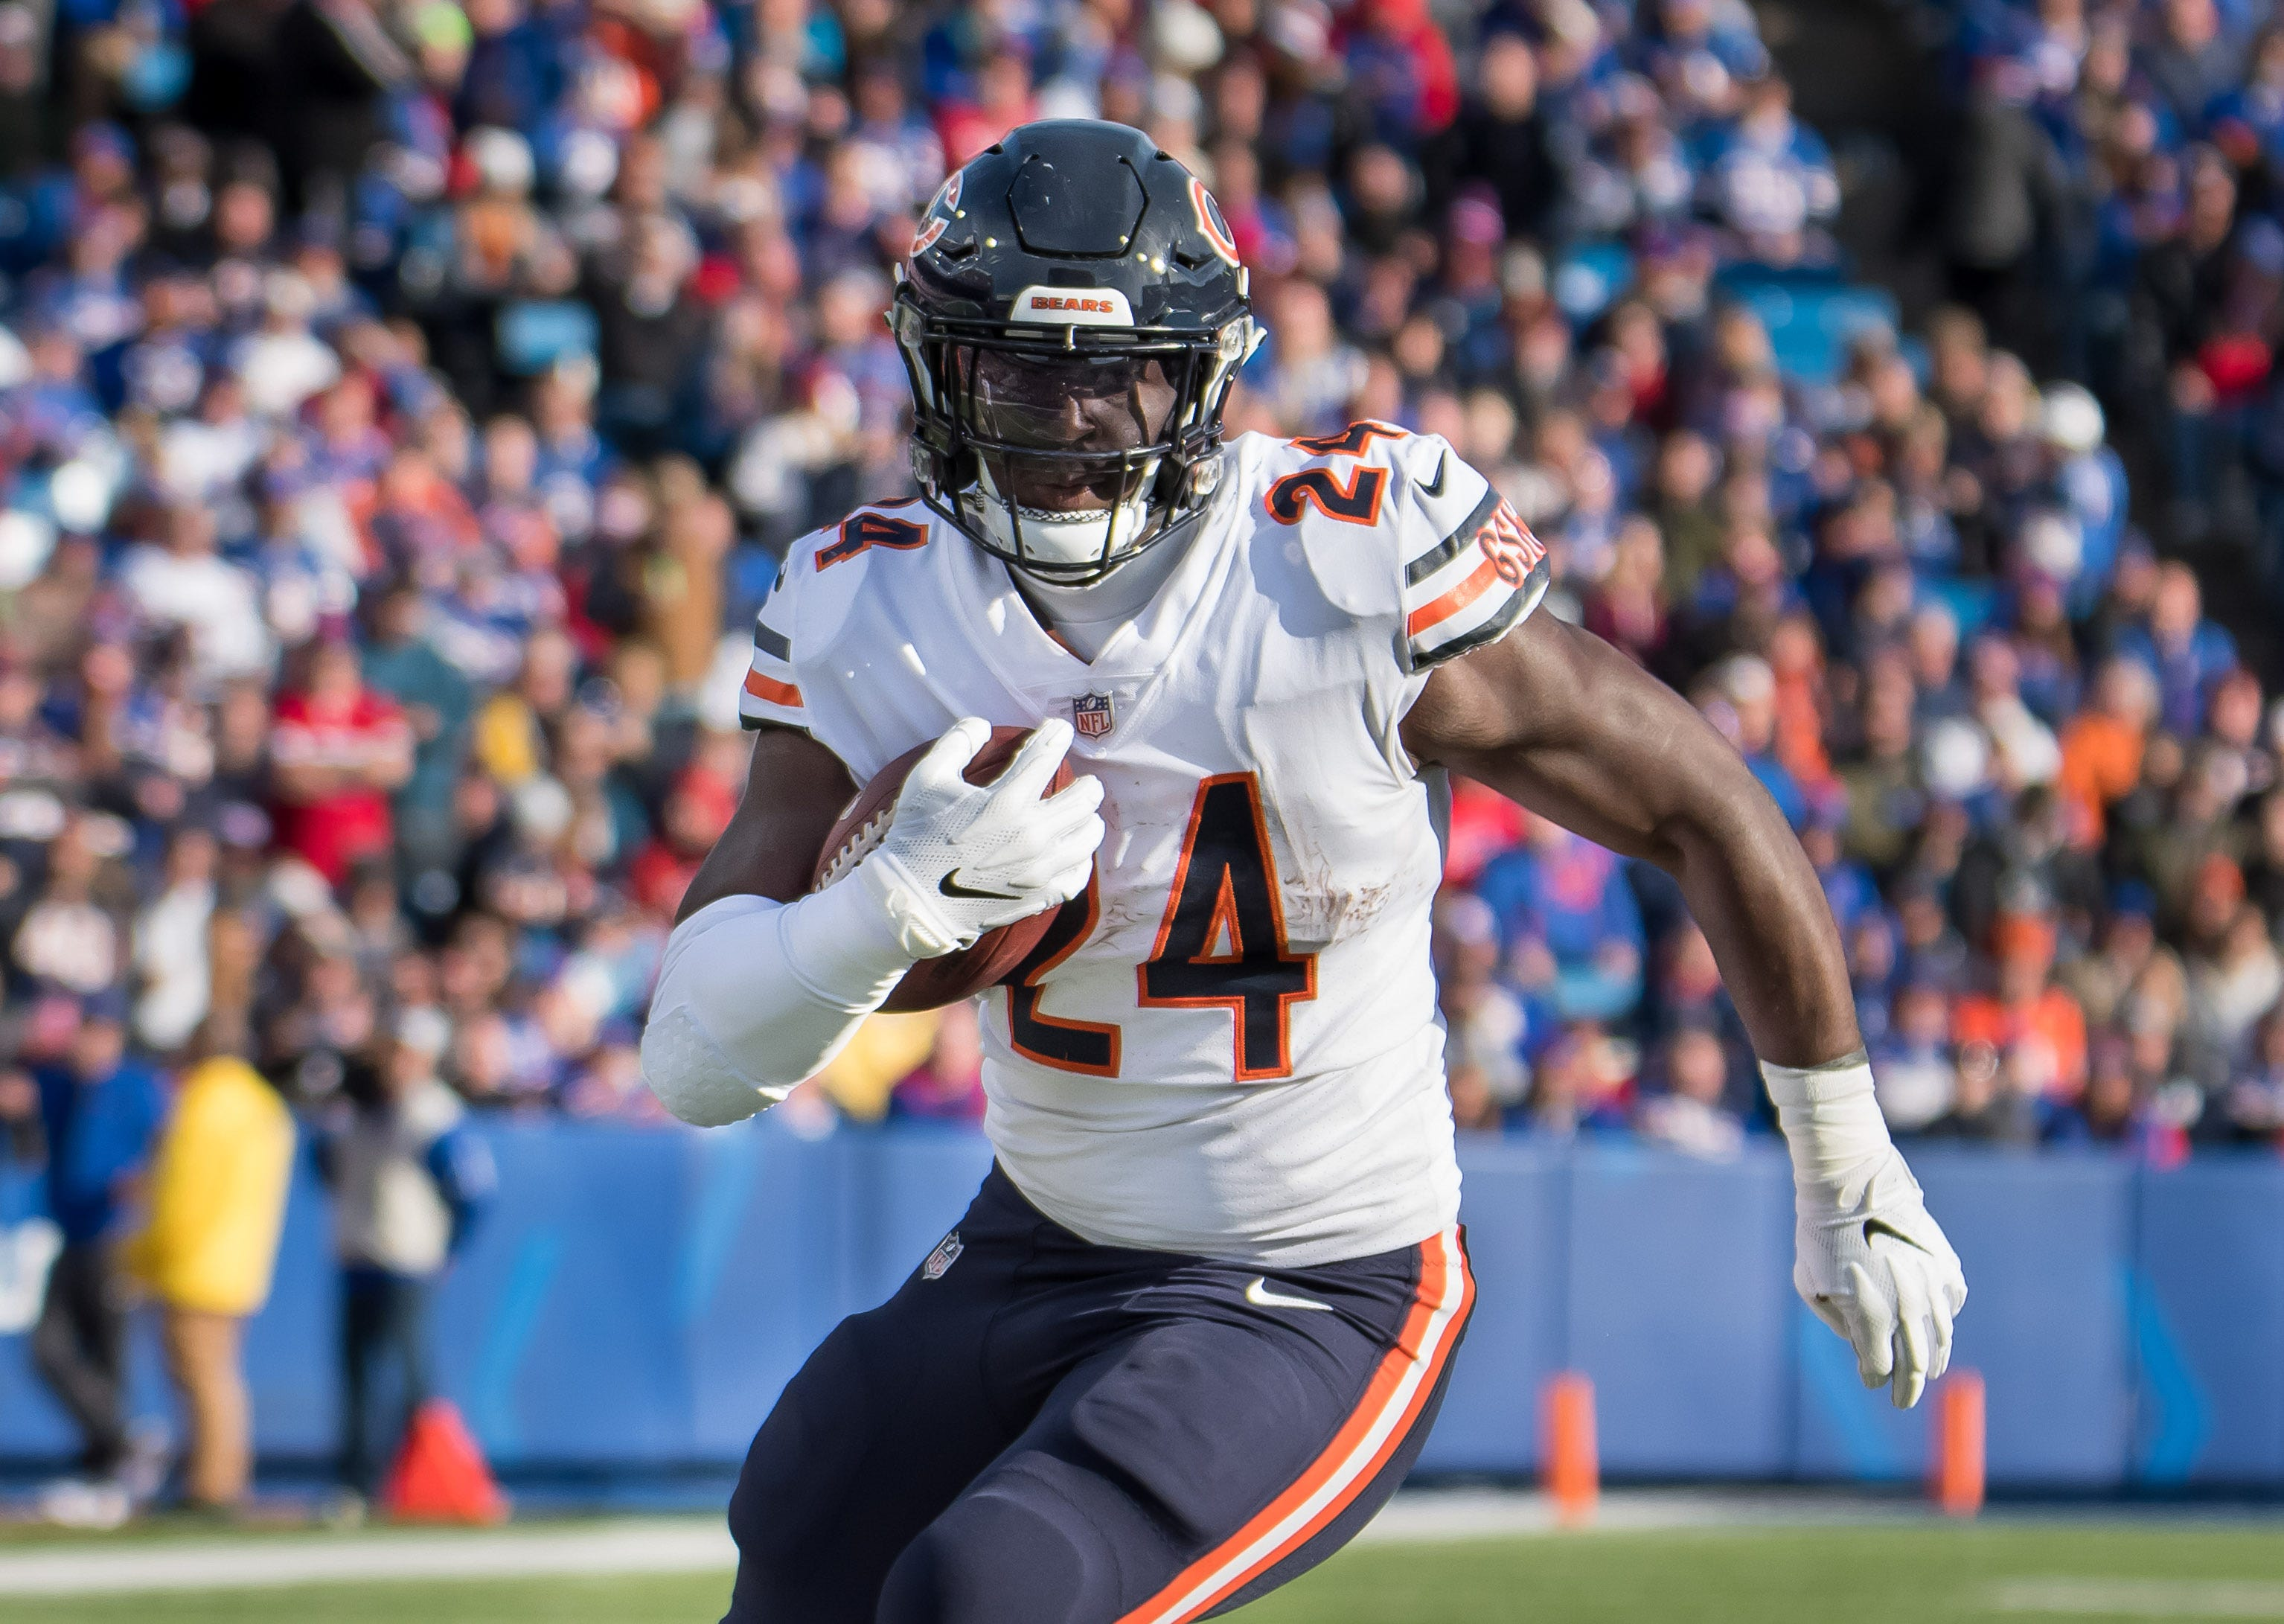 Eagles trade for a lead running back, getting Jordan Howard from Bears